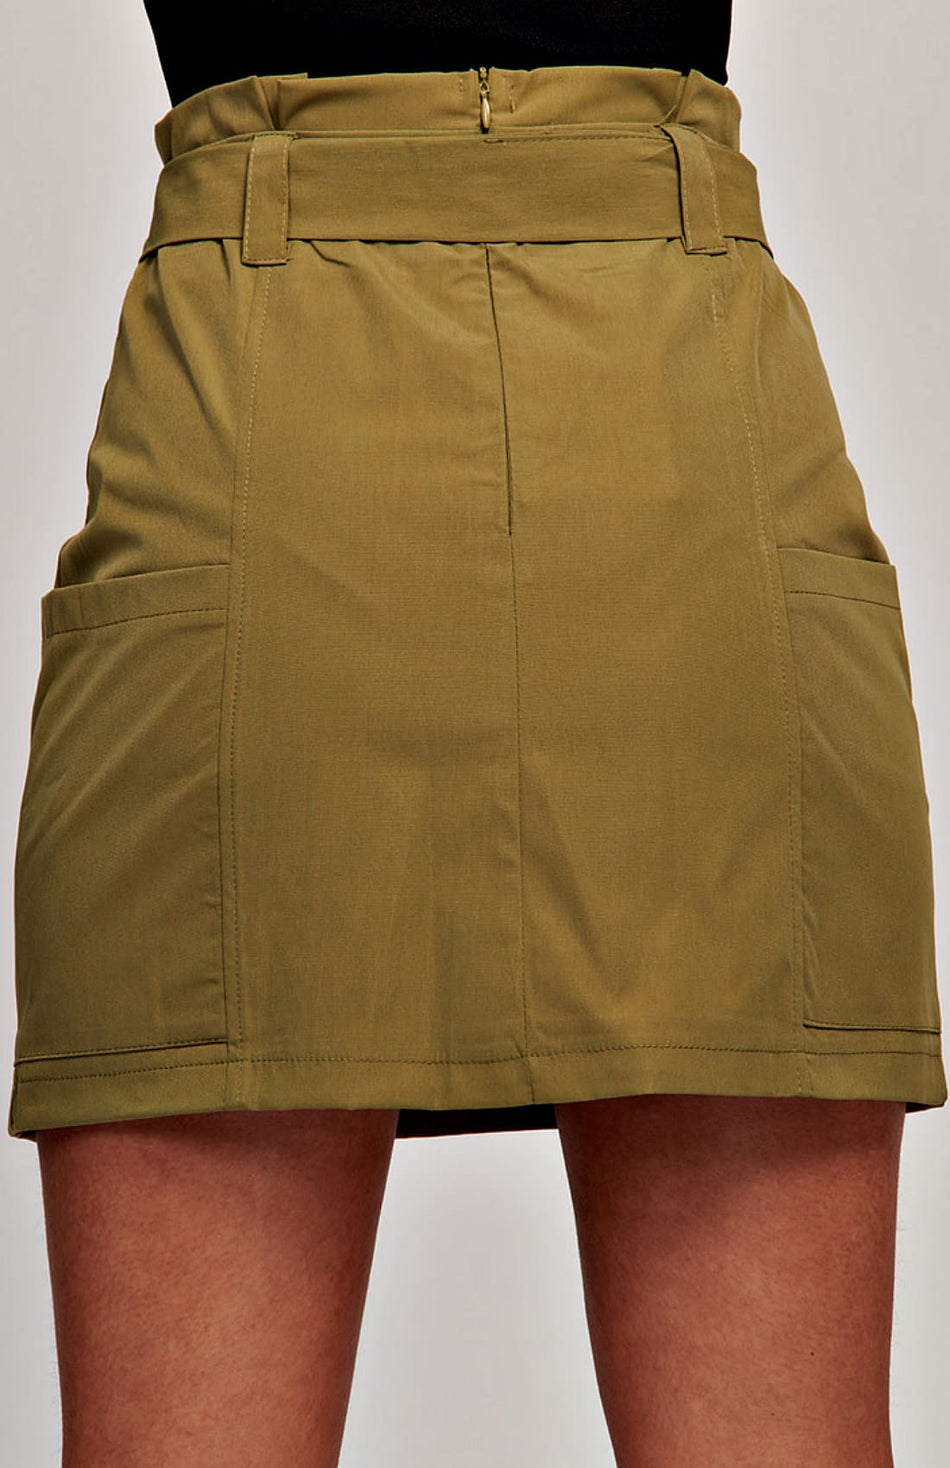 Paperbag Waist Self Belt Mini Skirt